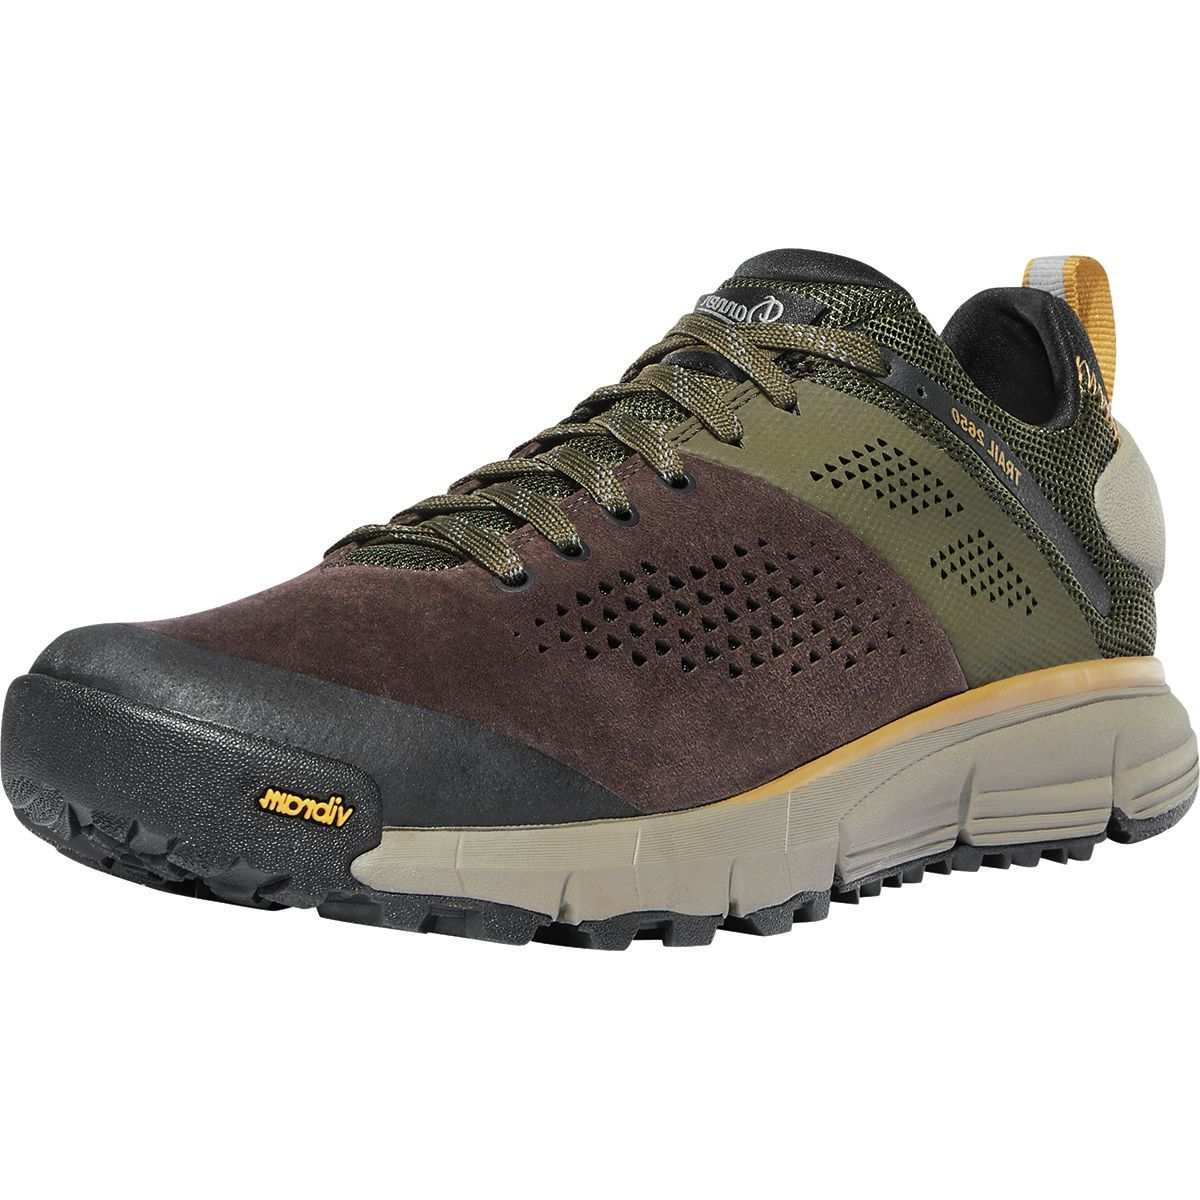 Danner Trail 2650 Hiking Shoe - Men's